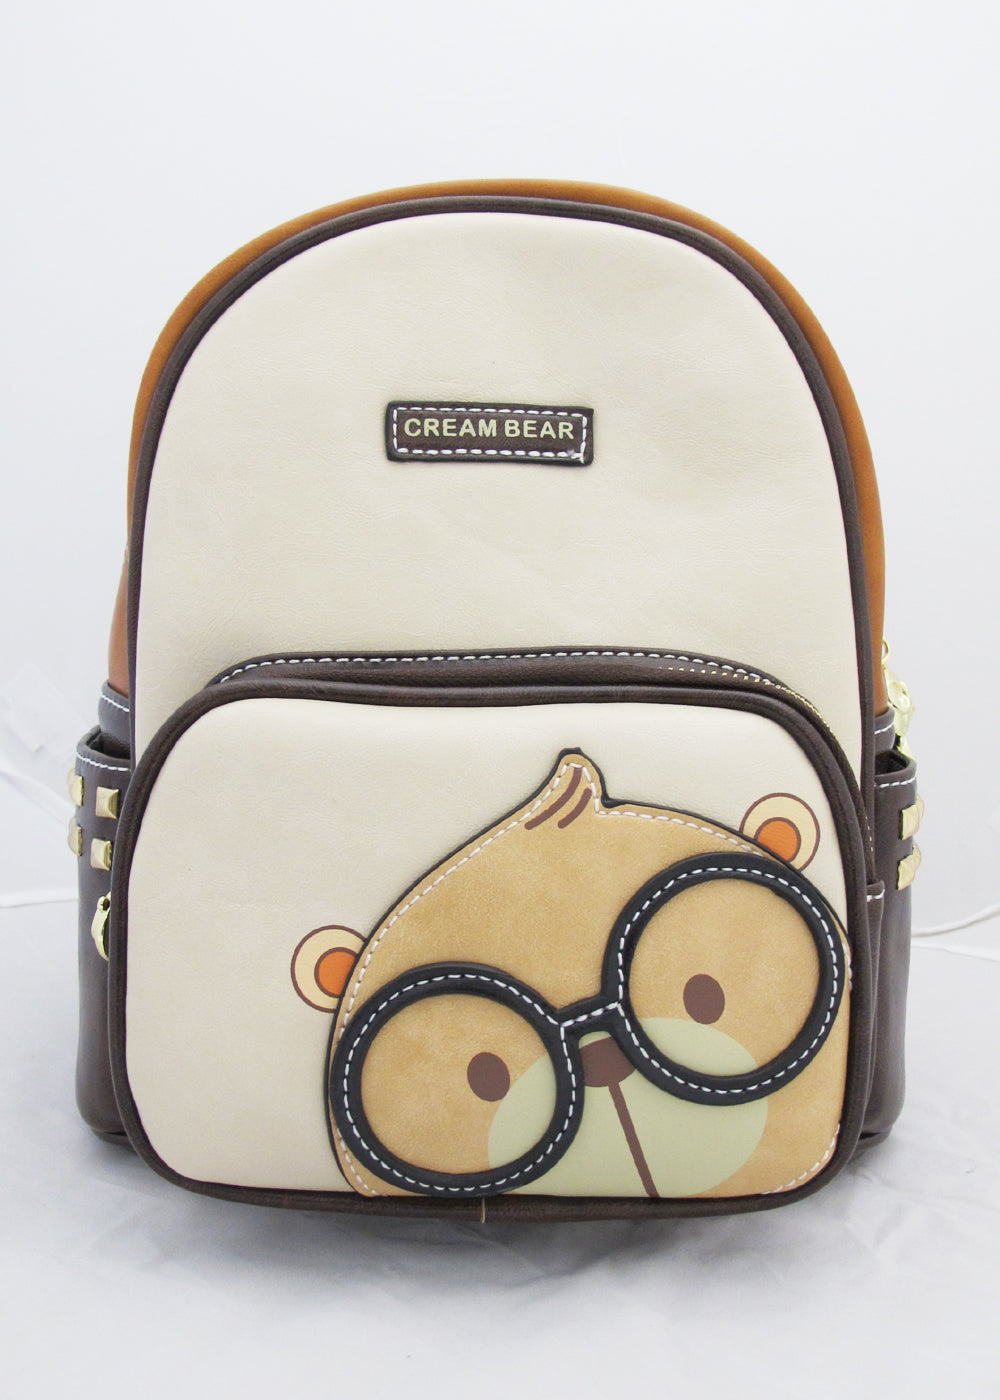 Cream Bear C1027-4 Adorable minireppu